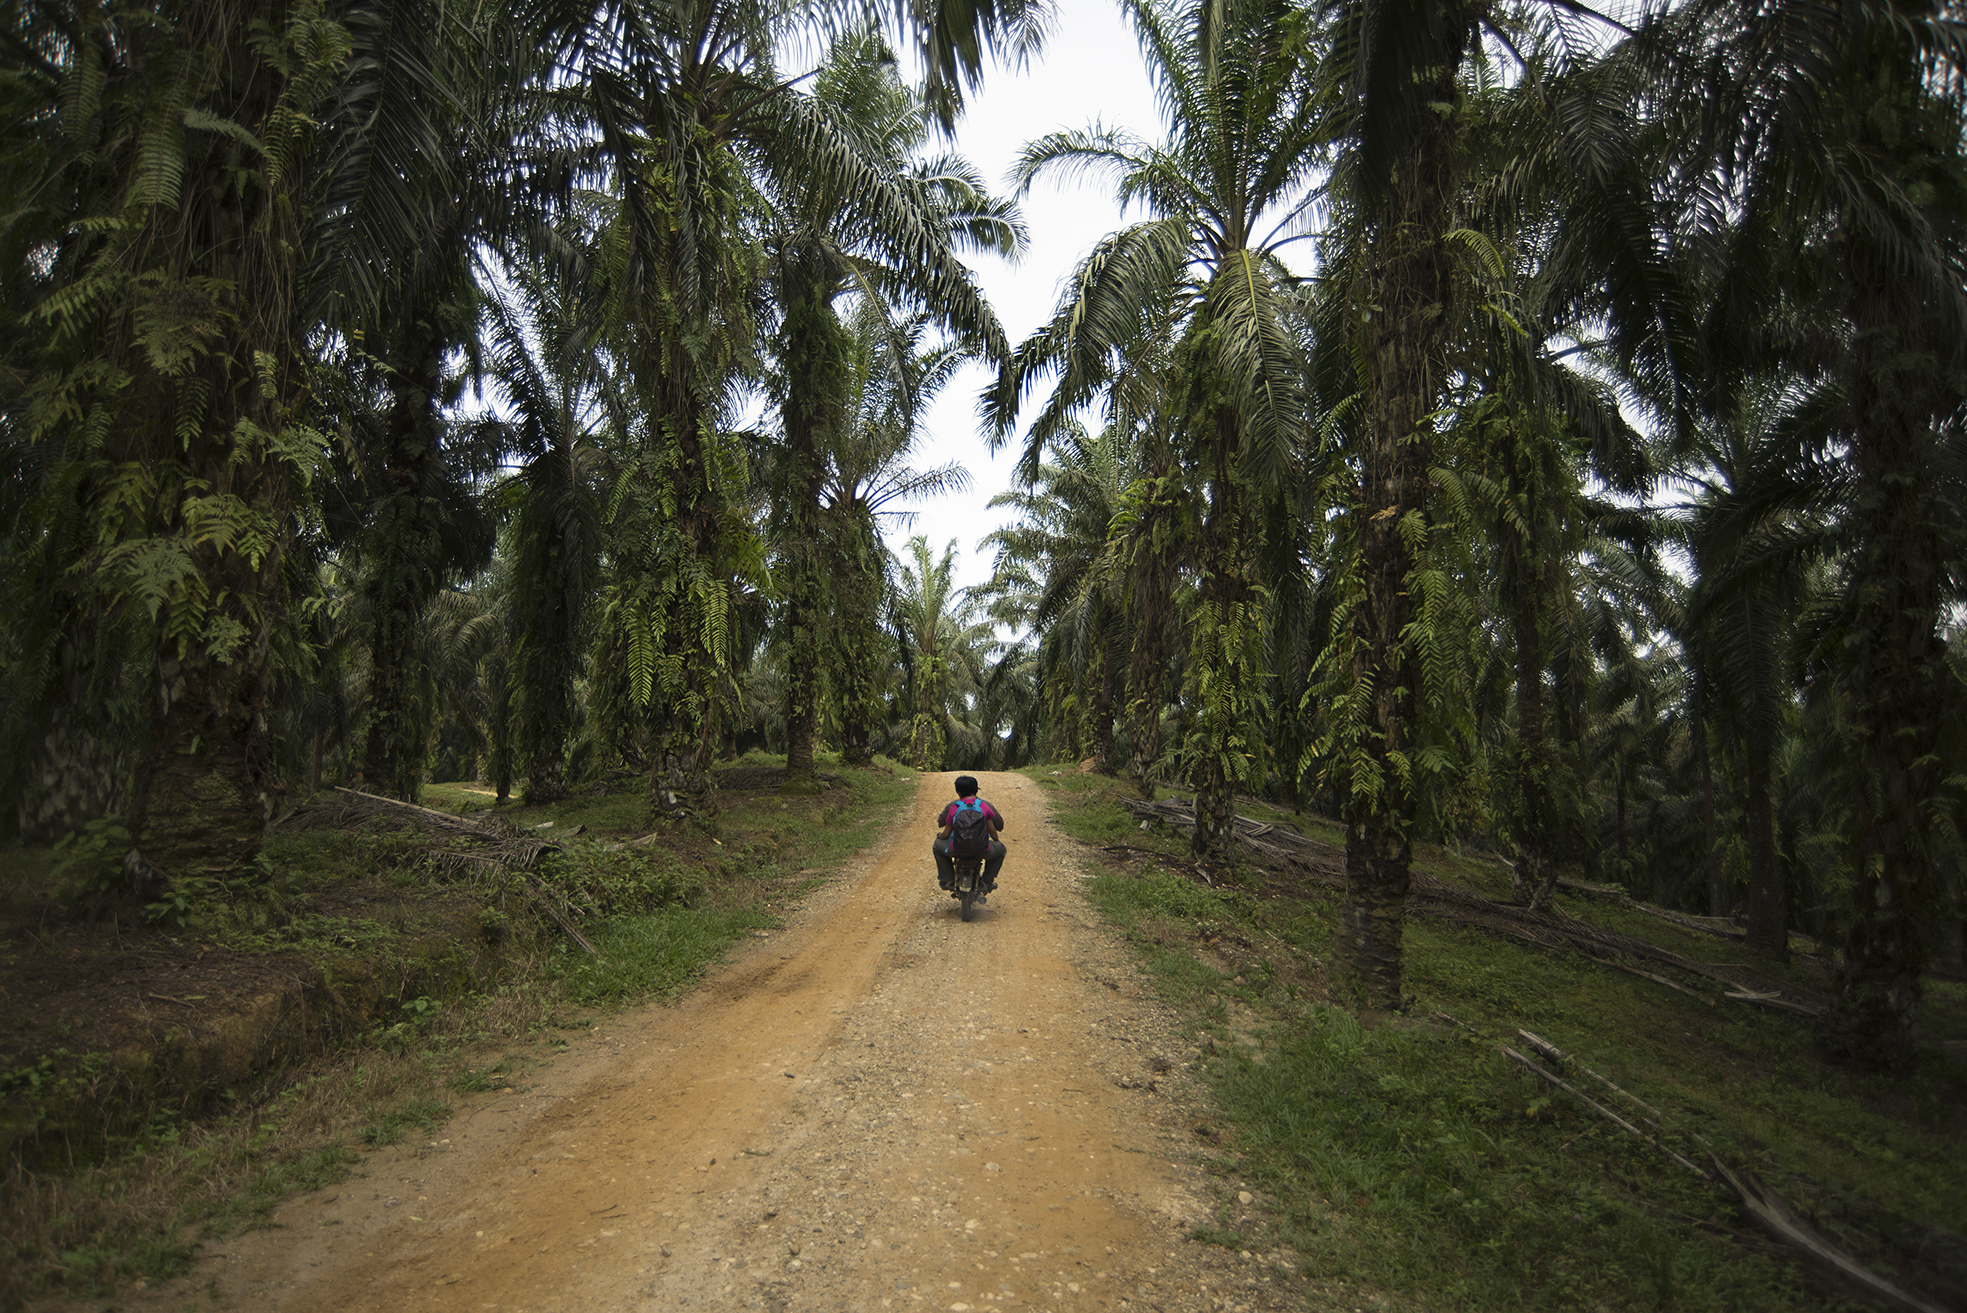 Our main mode of transportation through the palm plantations.